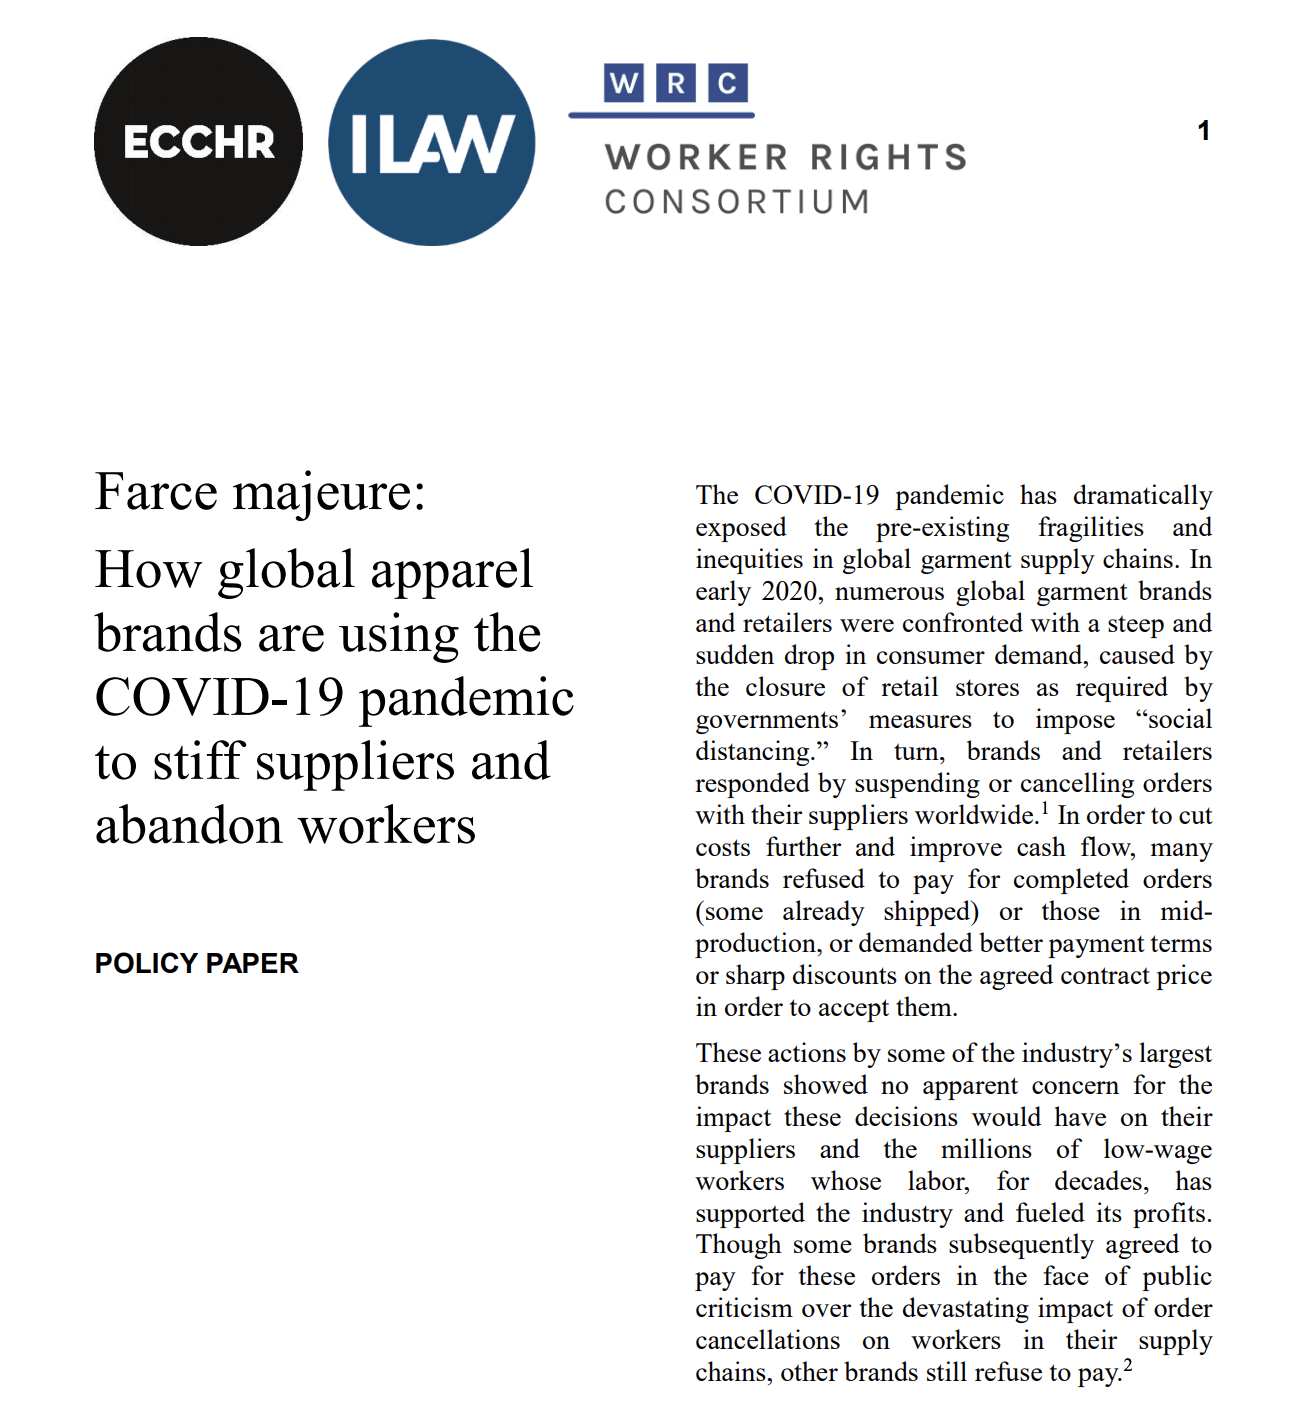 Farce majeure: How global apparel brands are using the COVID-19 pandemic to stiff suppliers and abandon workers